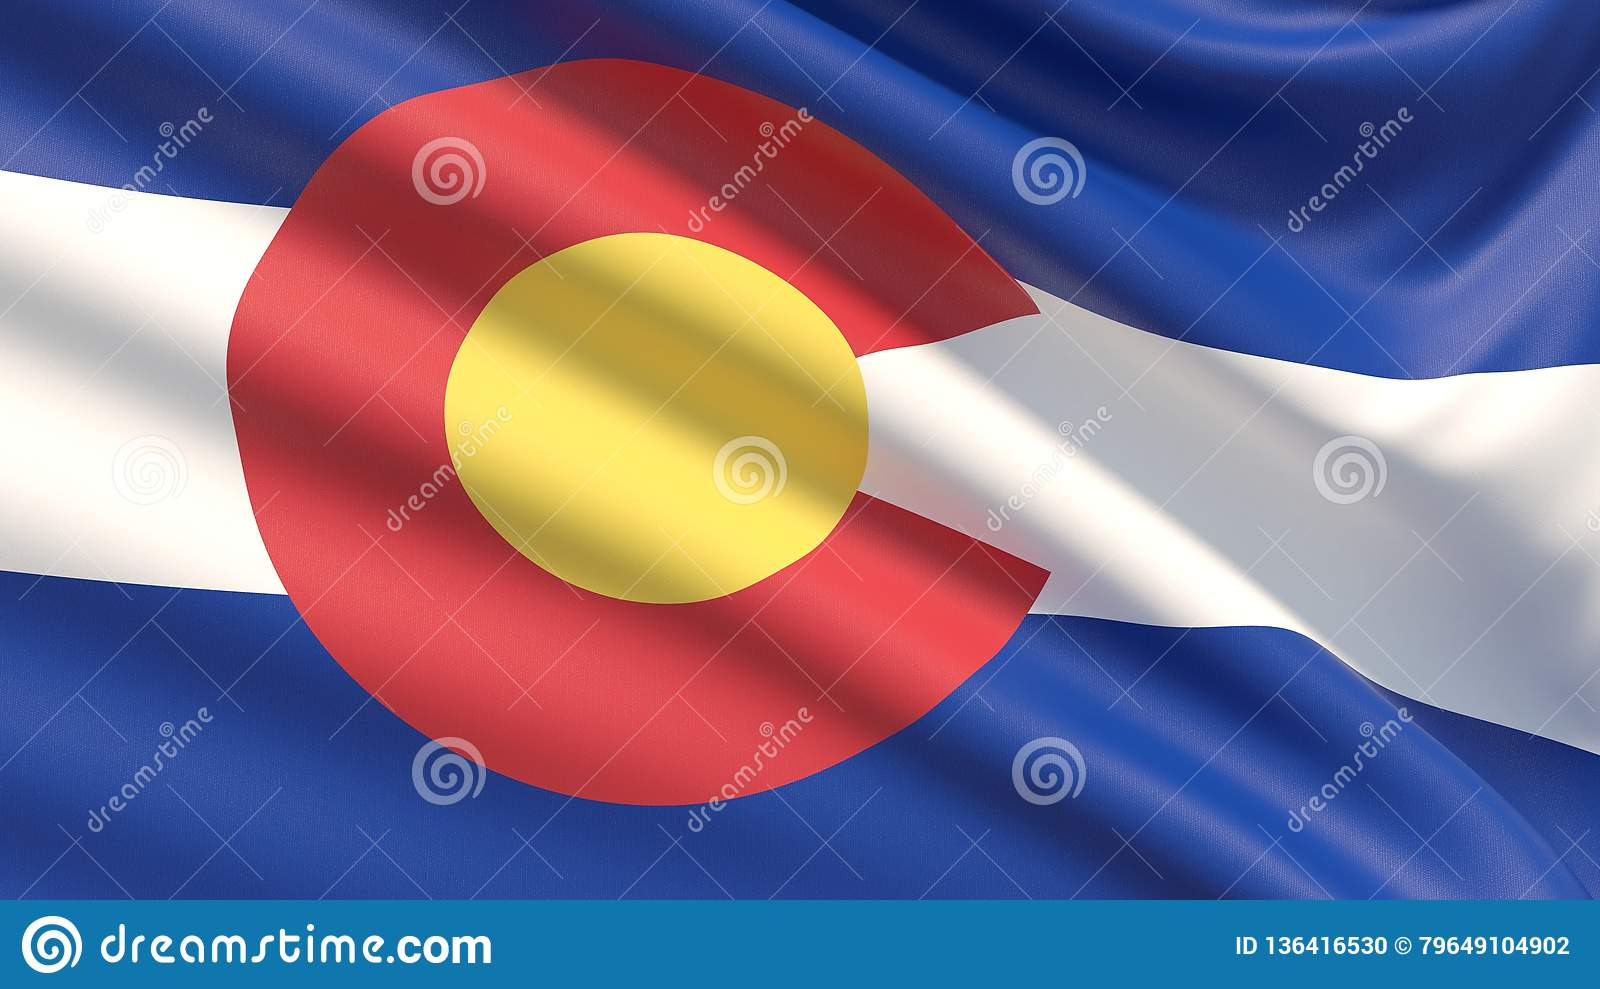 State of Colorado flag. Flags of the states of USA.